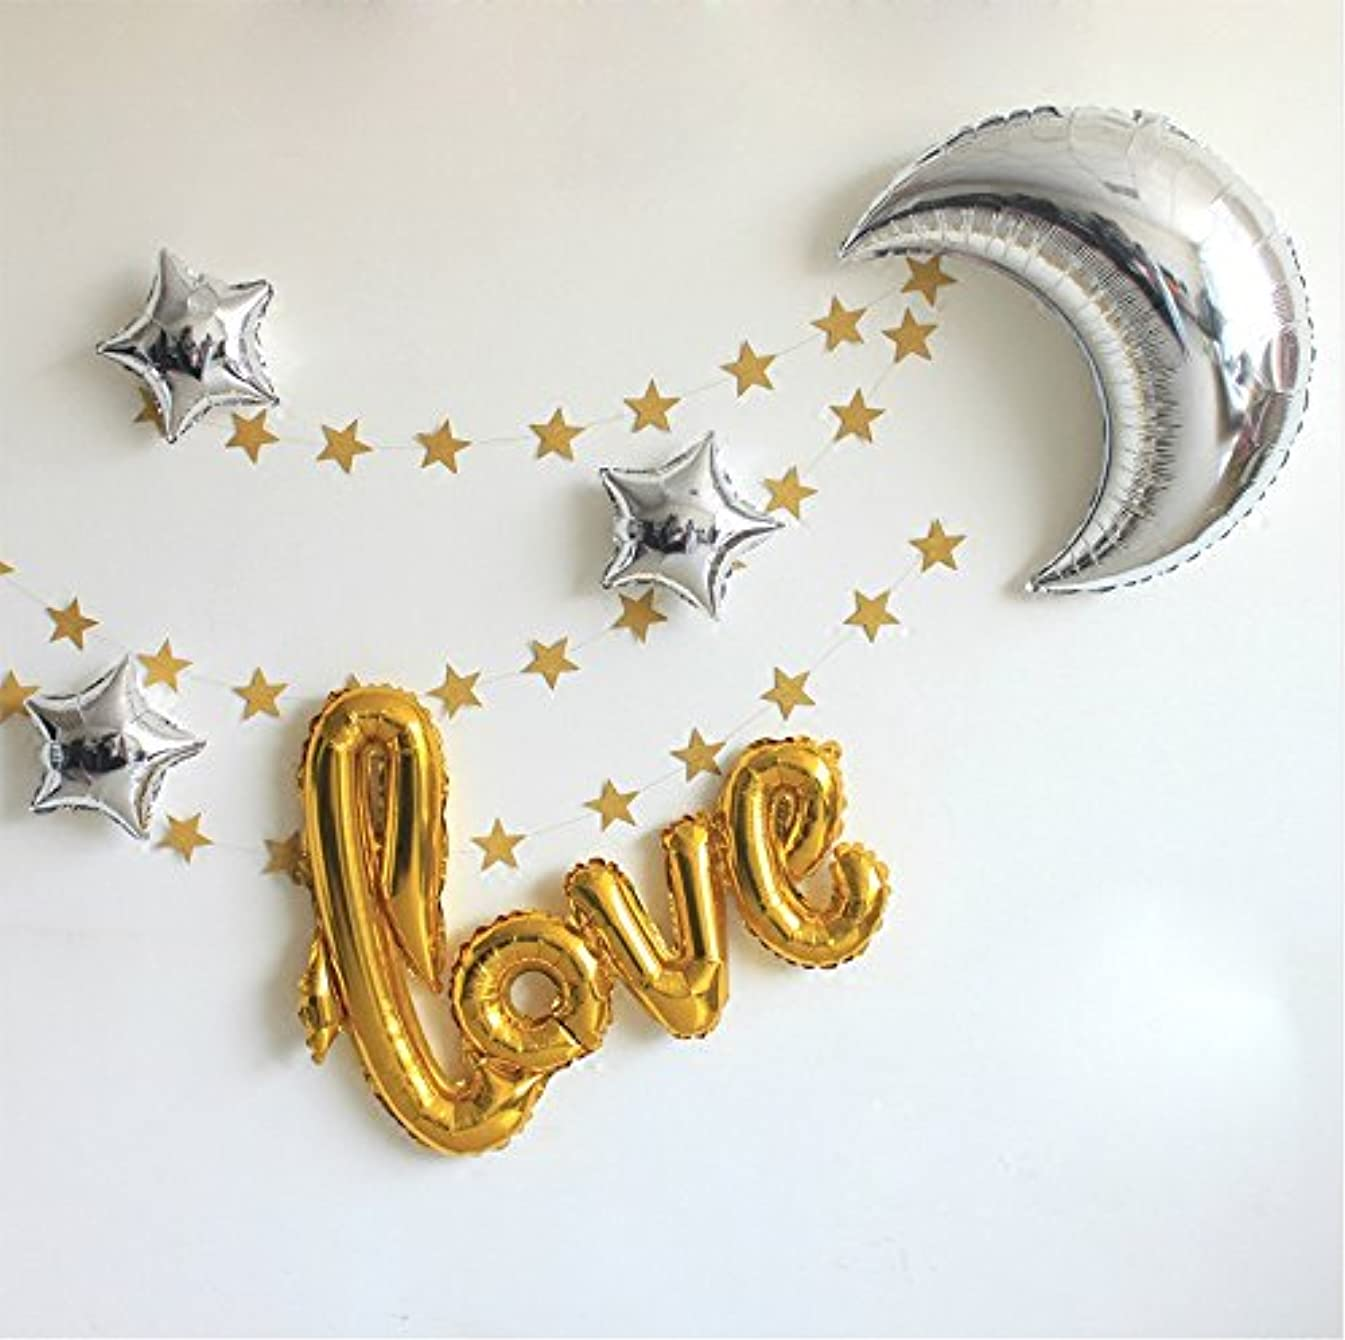 """42 Inch """"Love"""" and 36 Inch Moon Large Size Foil Balloons Air-Filled/Helium Balloon for Party Show Performance Wedding Baby Shower Window Dressing Birthday Anniversary Decoration (Gold Set)"""